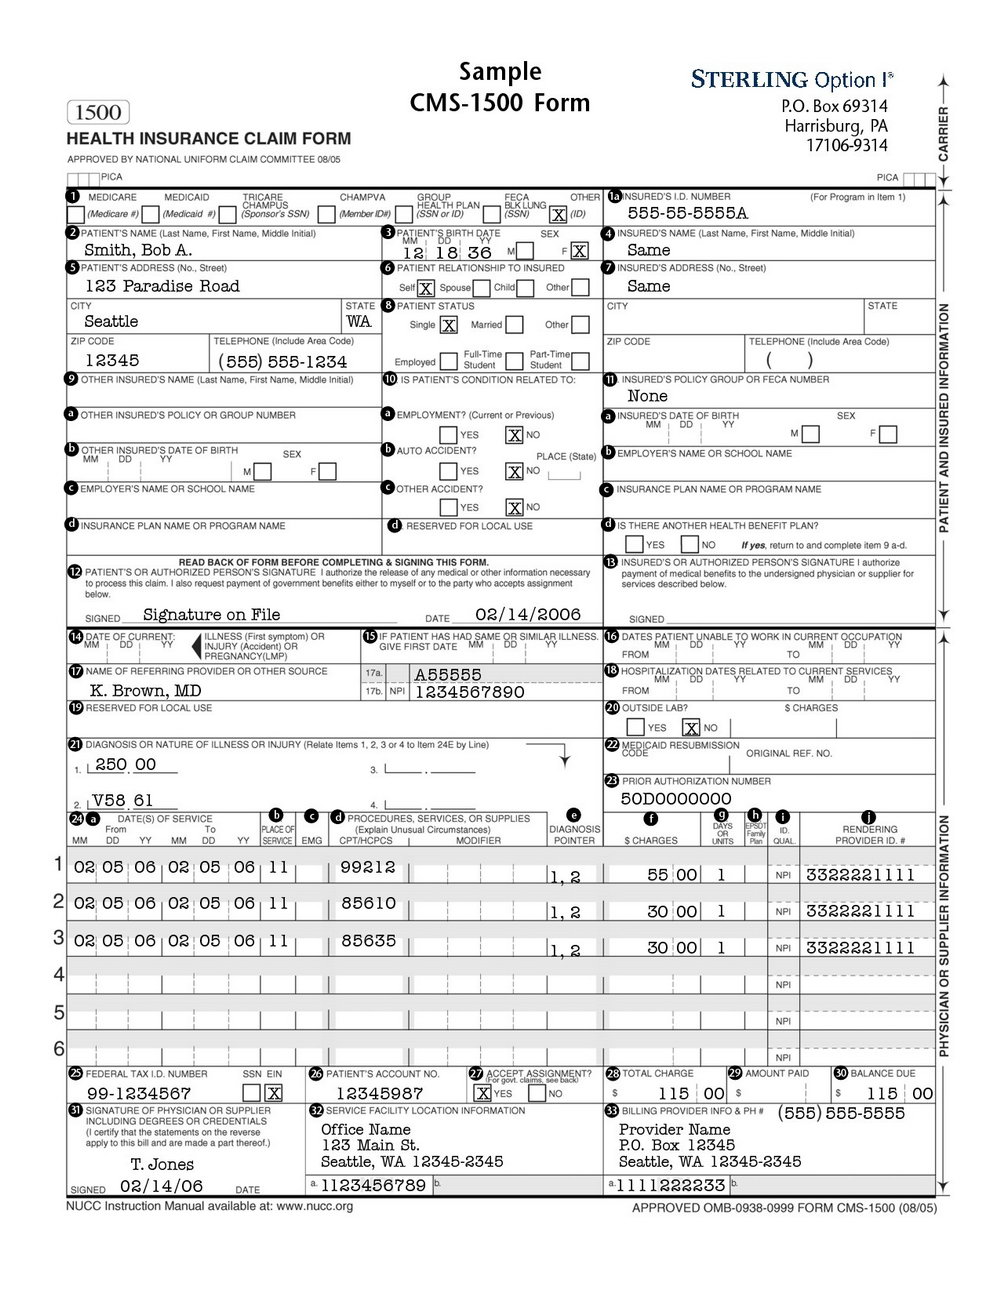 New Cms 1500 Form